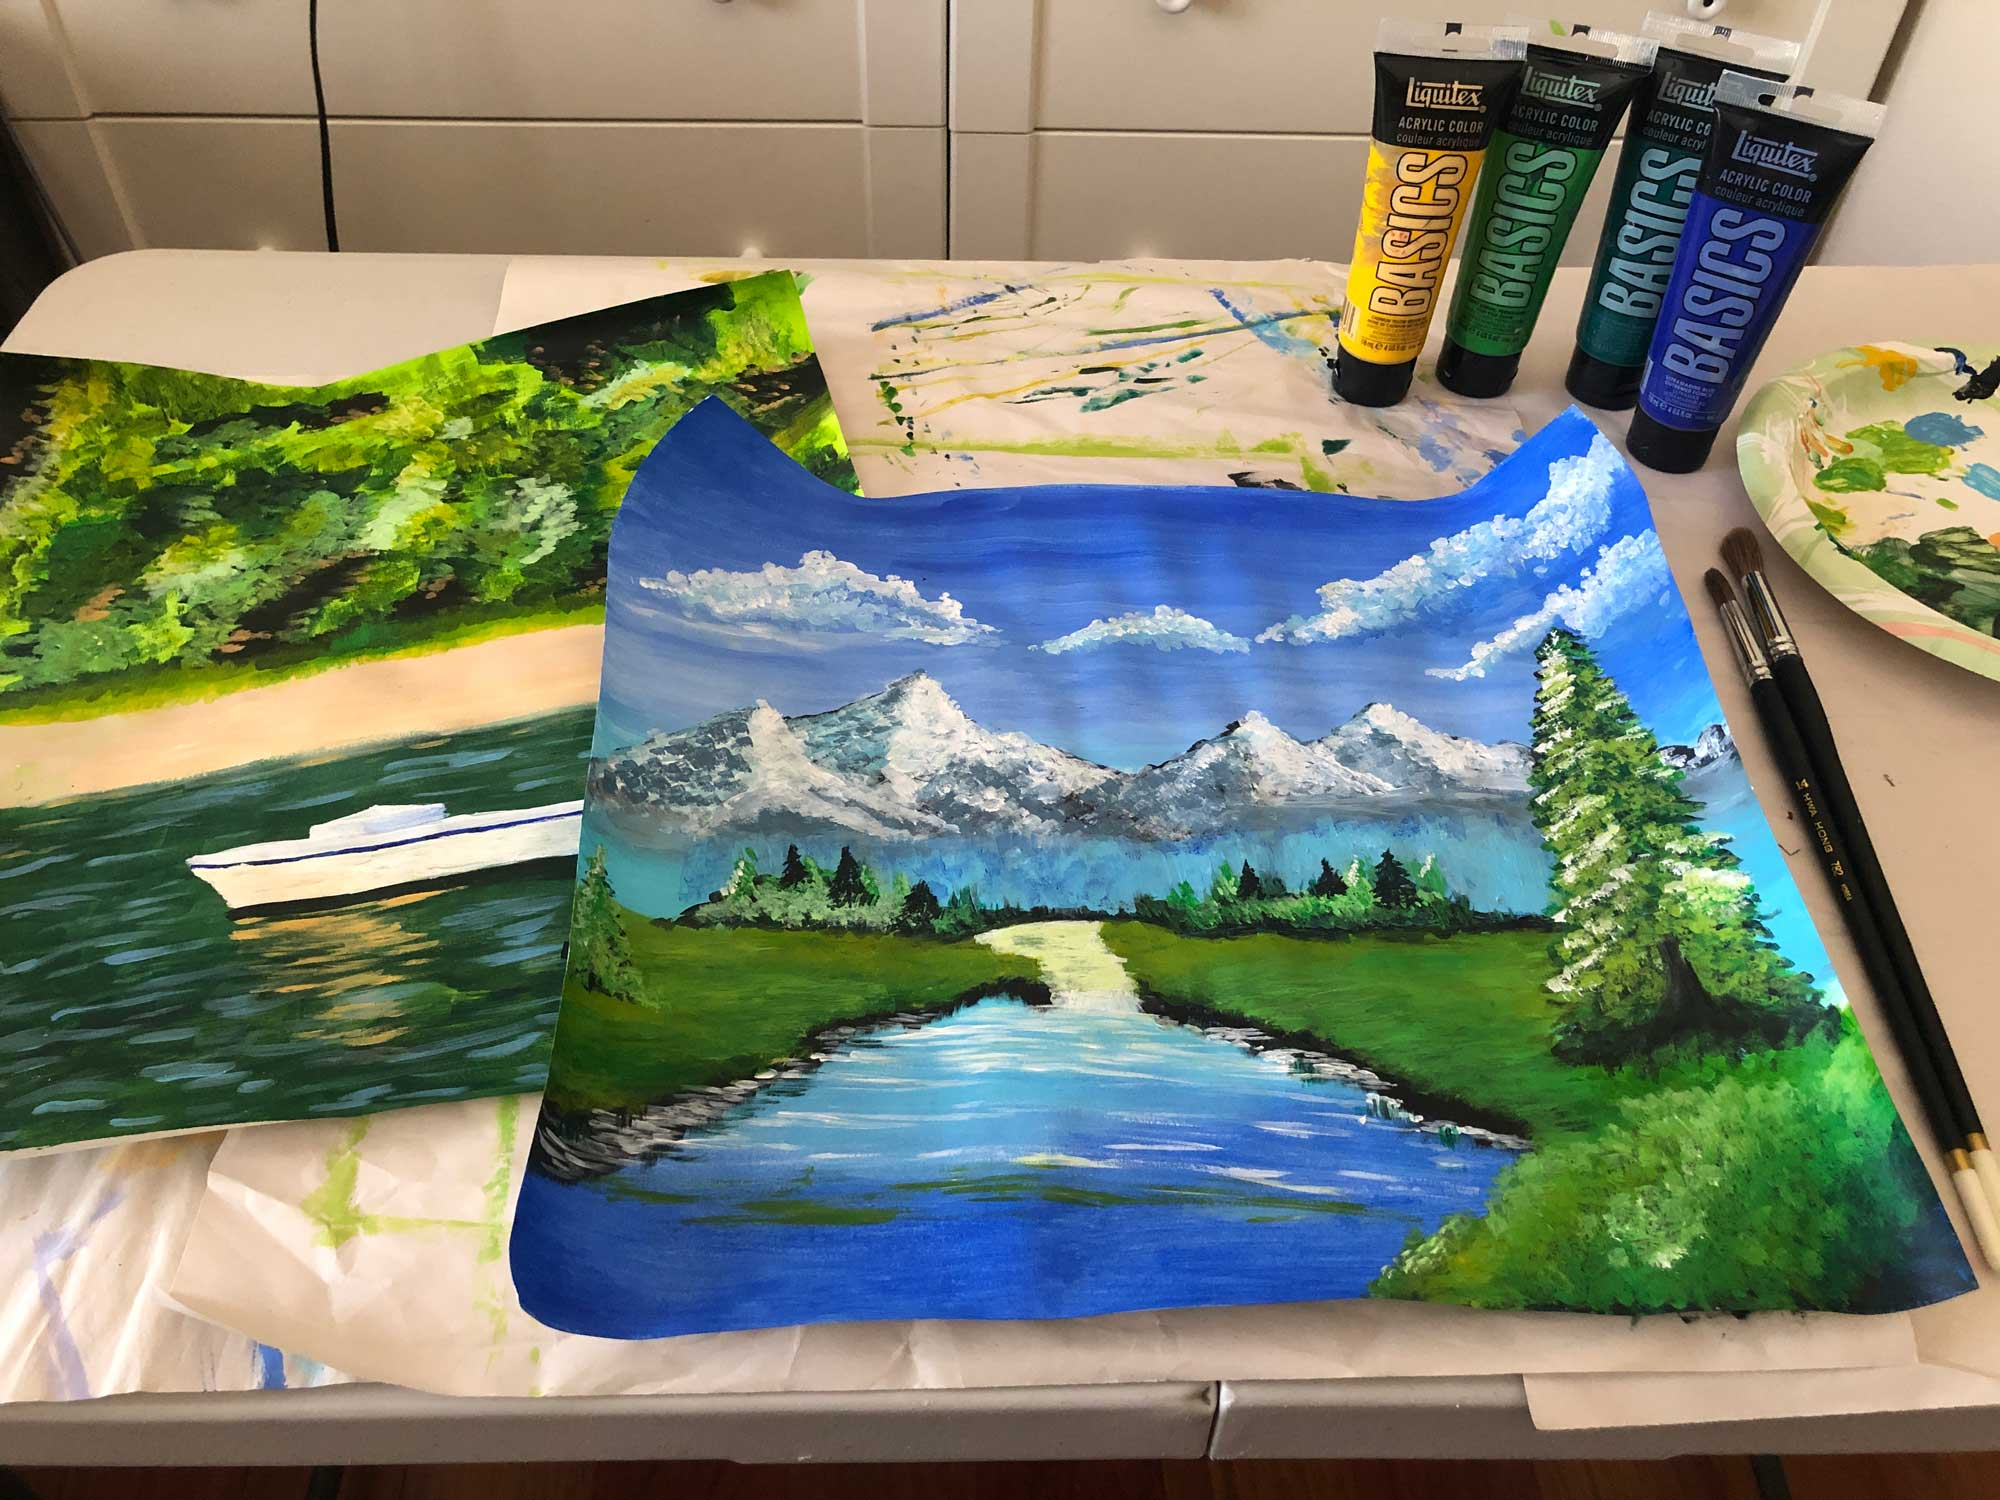 Acrylic paints next to painting of landscape